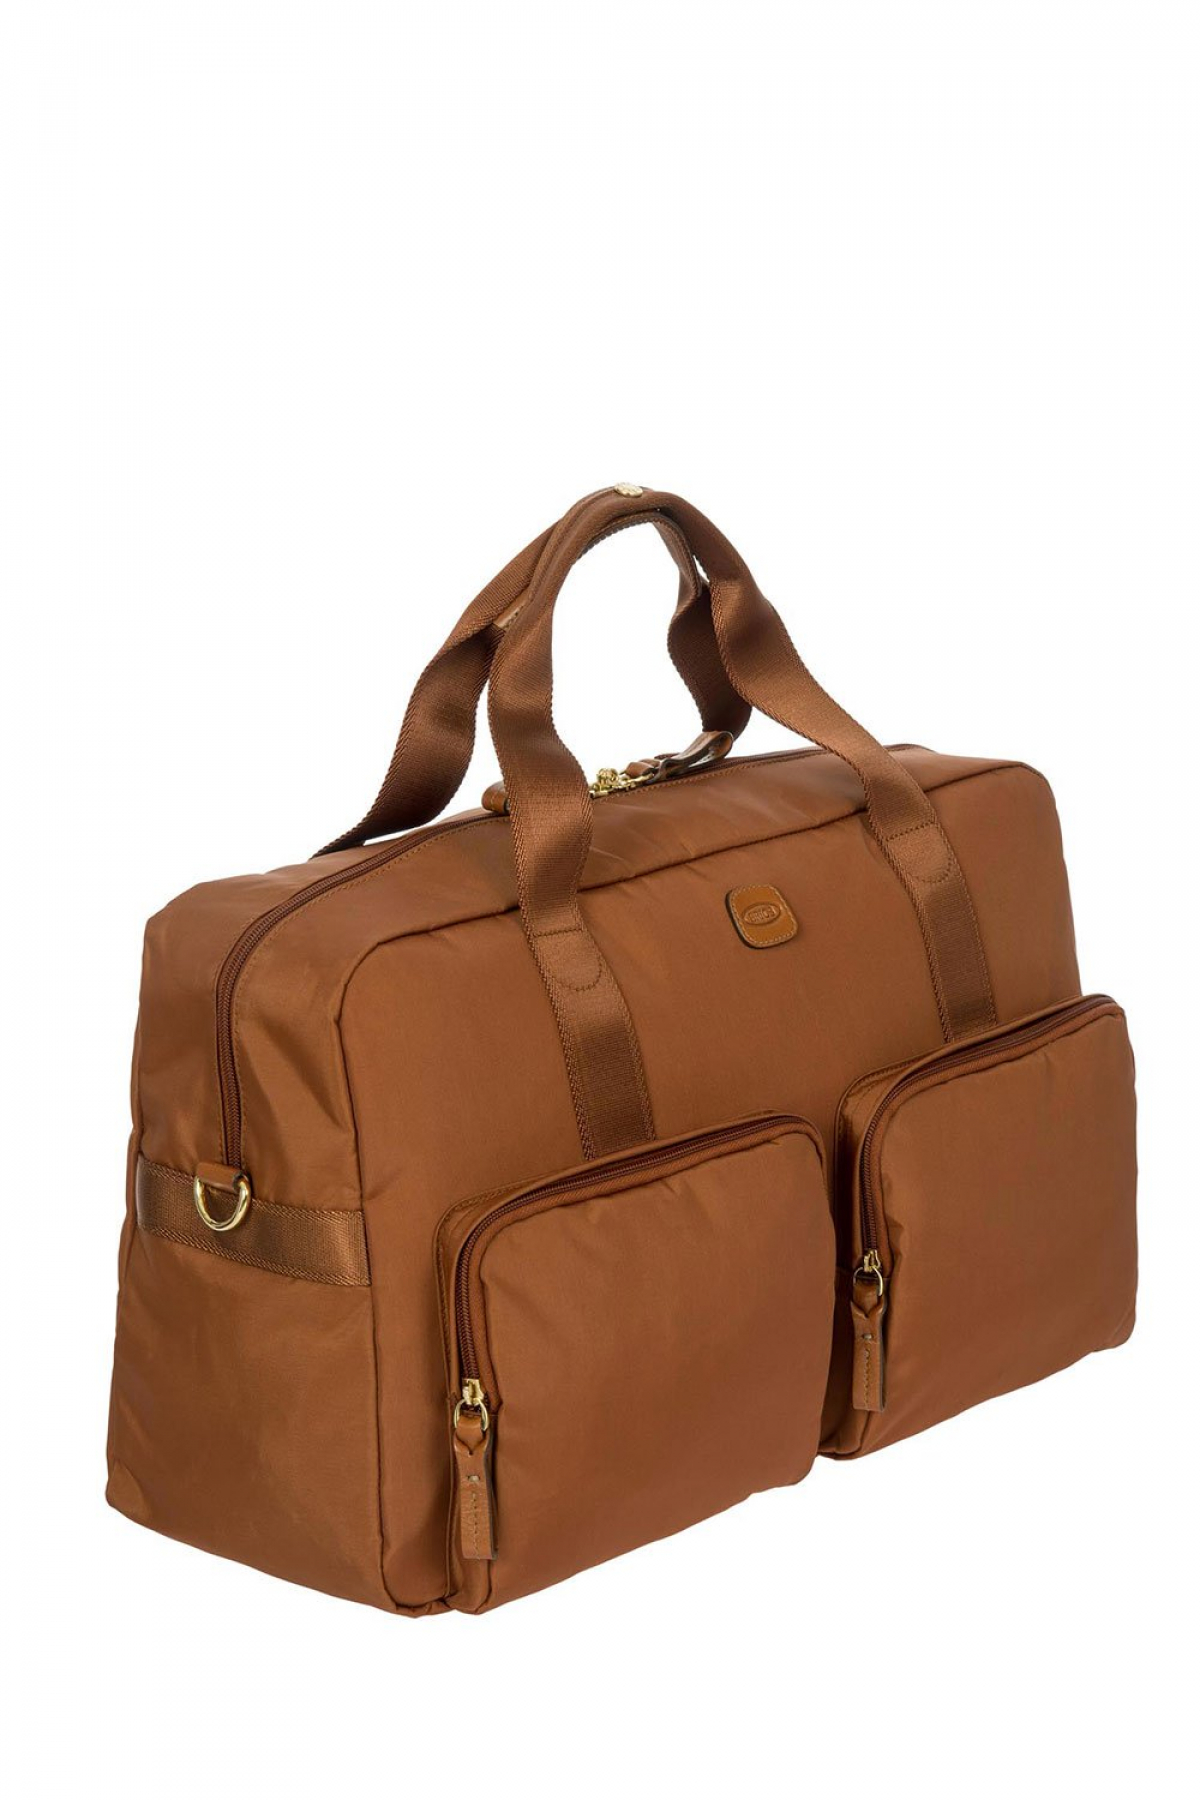 2192 Bric's X-Travel Travel Bag 46x24x22 cm Brown